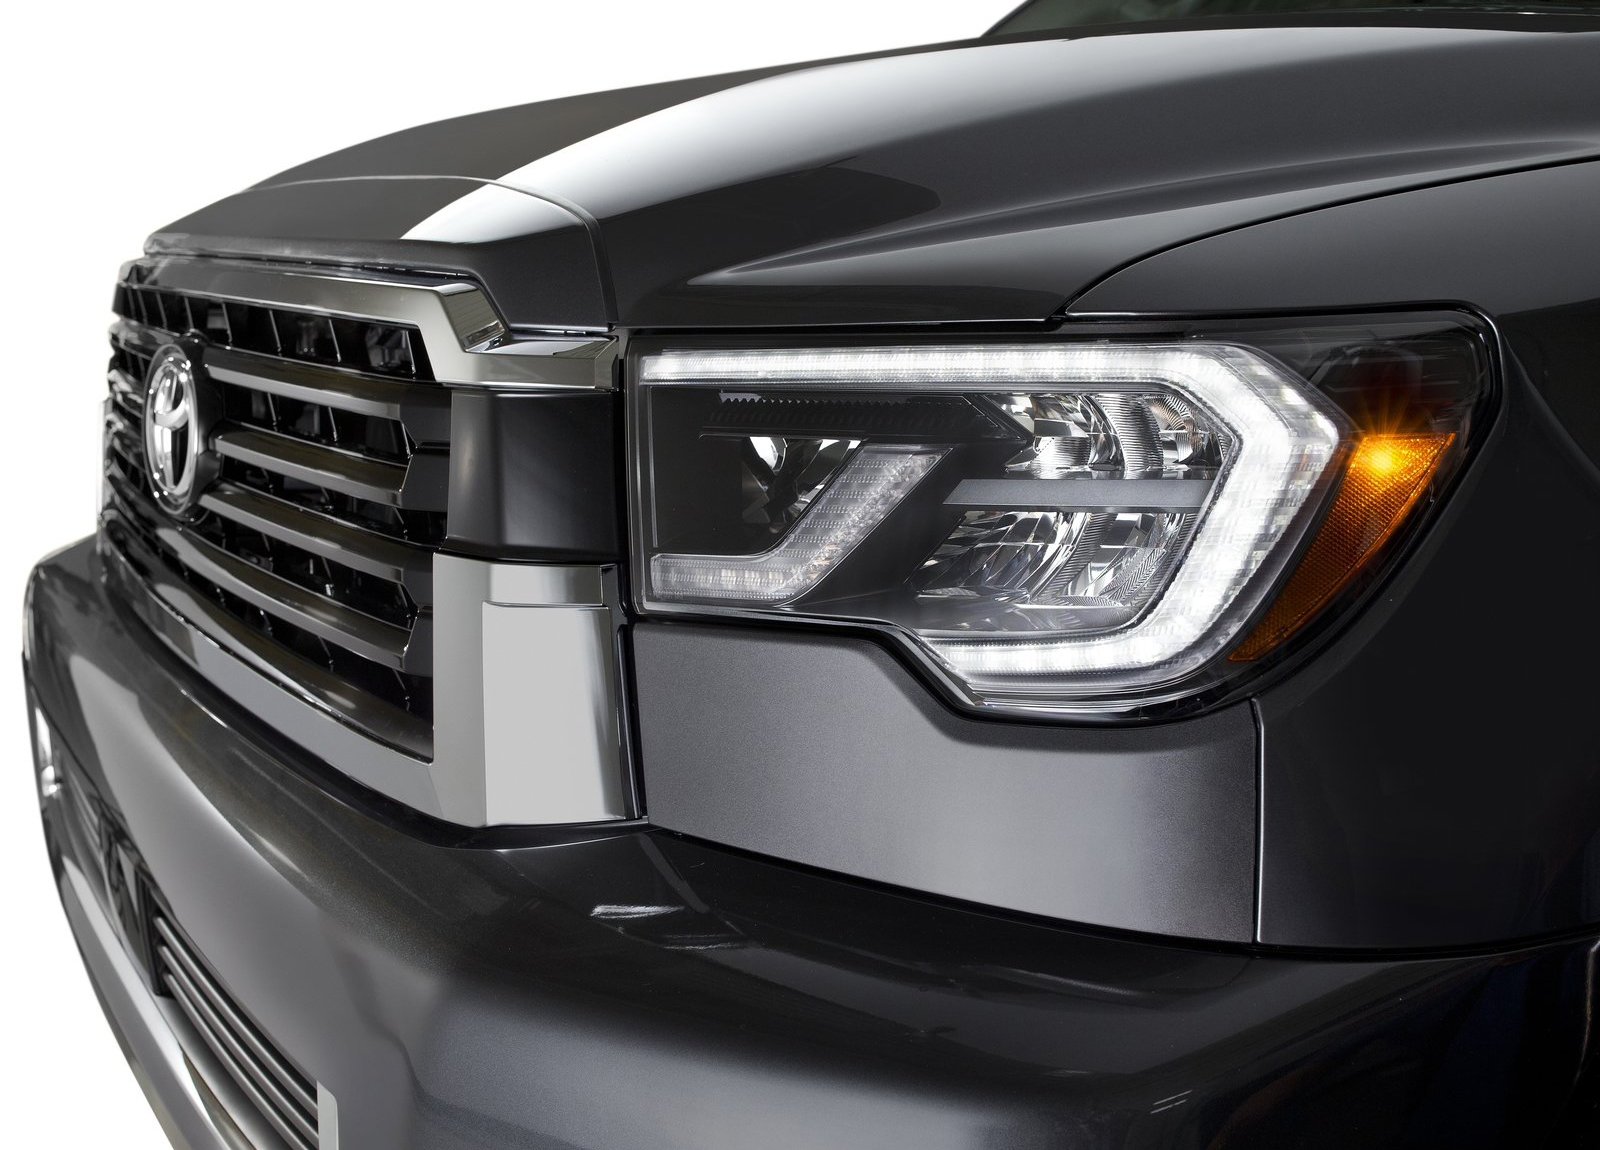 2018 Toyota Tundra and Sequoia TRD Sport variants Image 613832